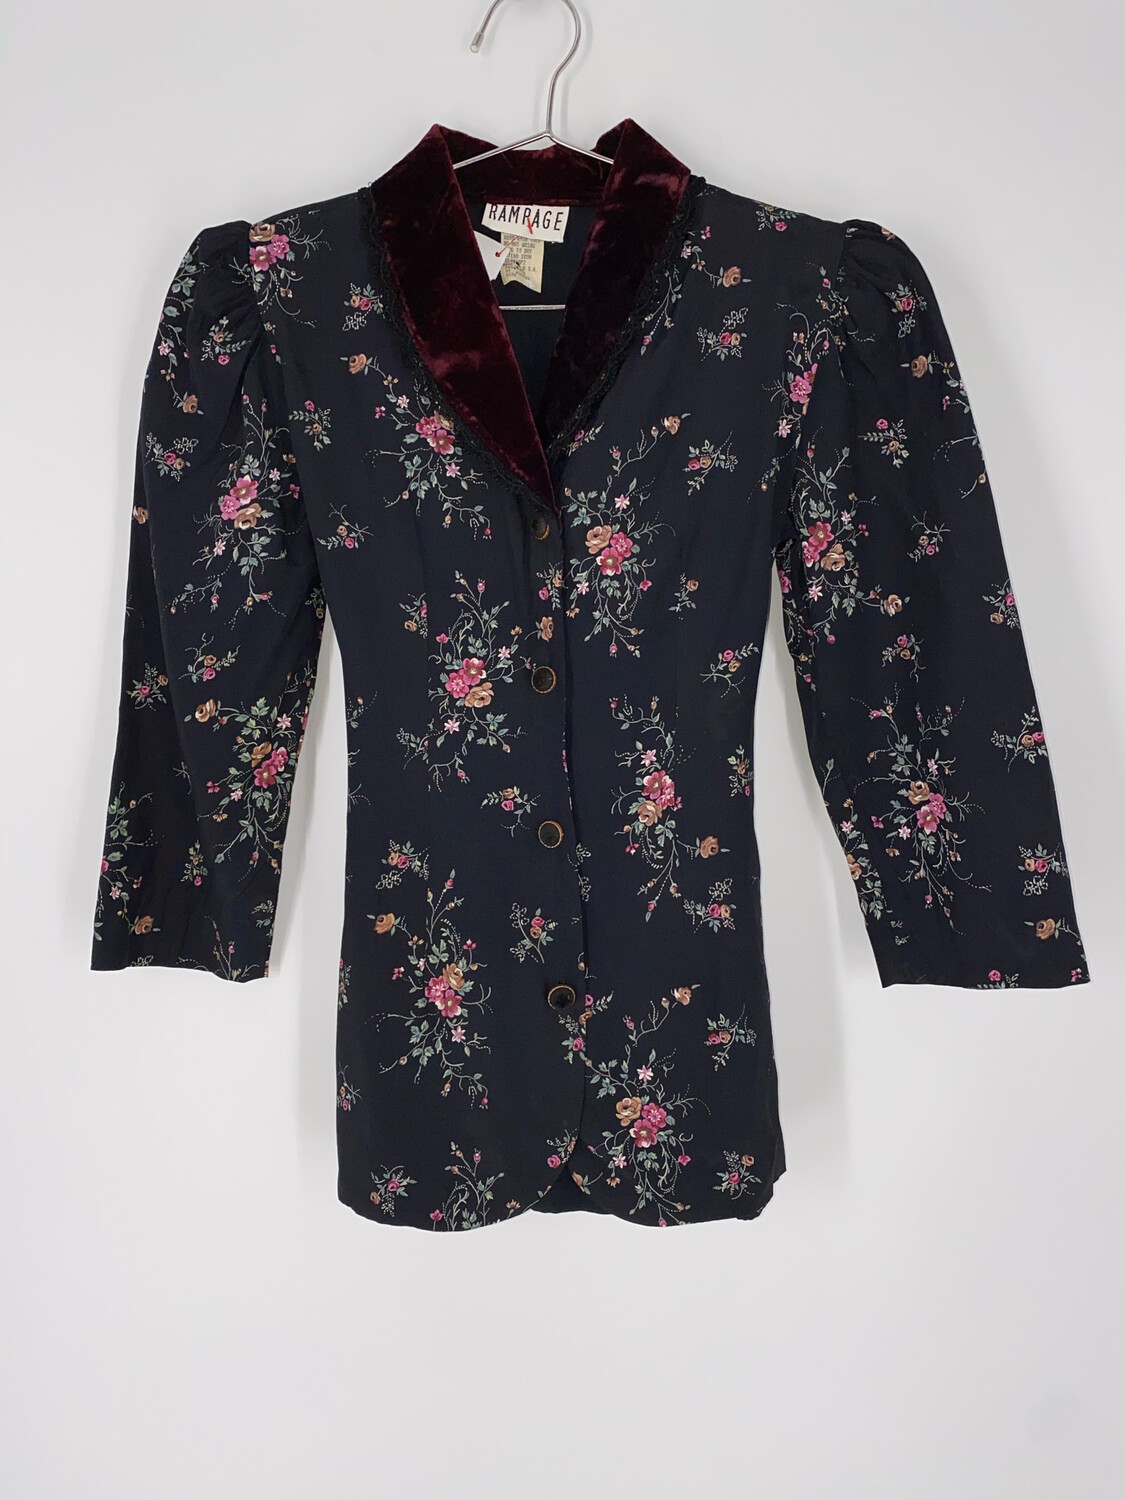 Rampage Vintage Floral And Velvet Button Up Blouse Size S